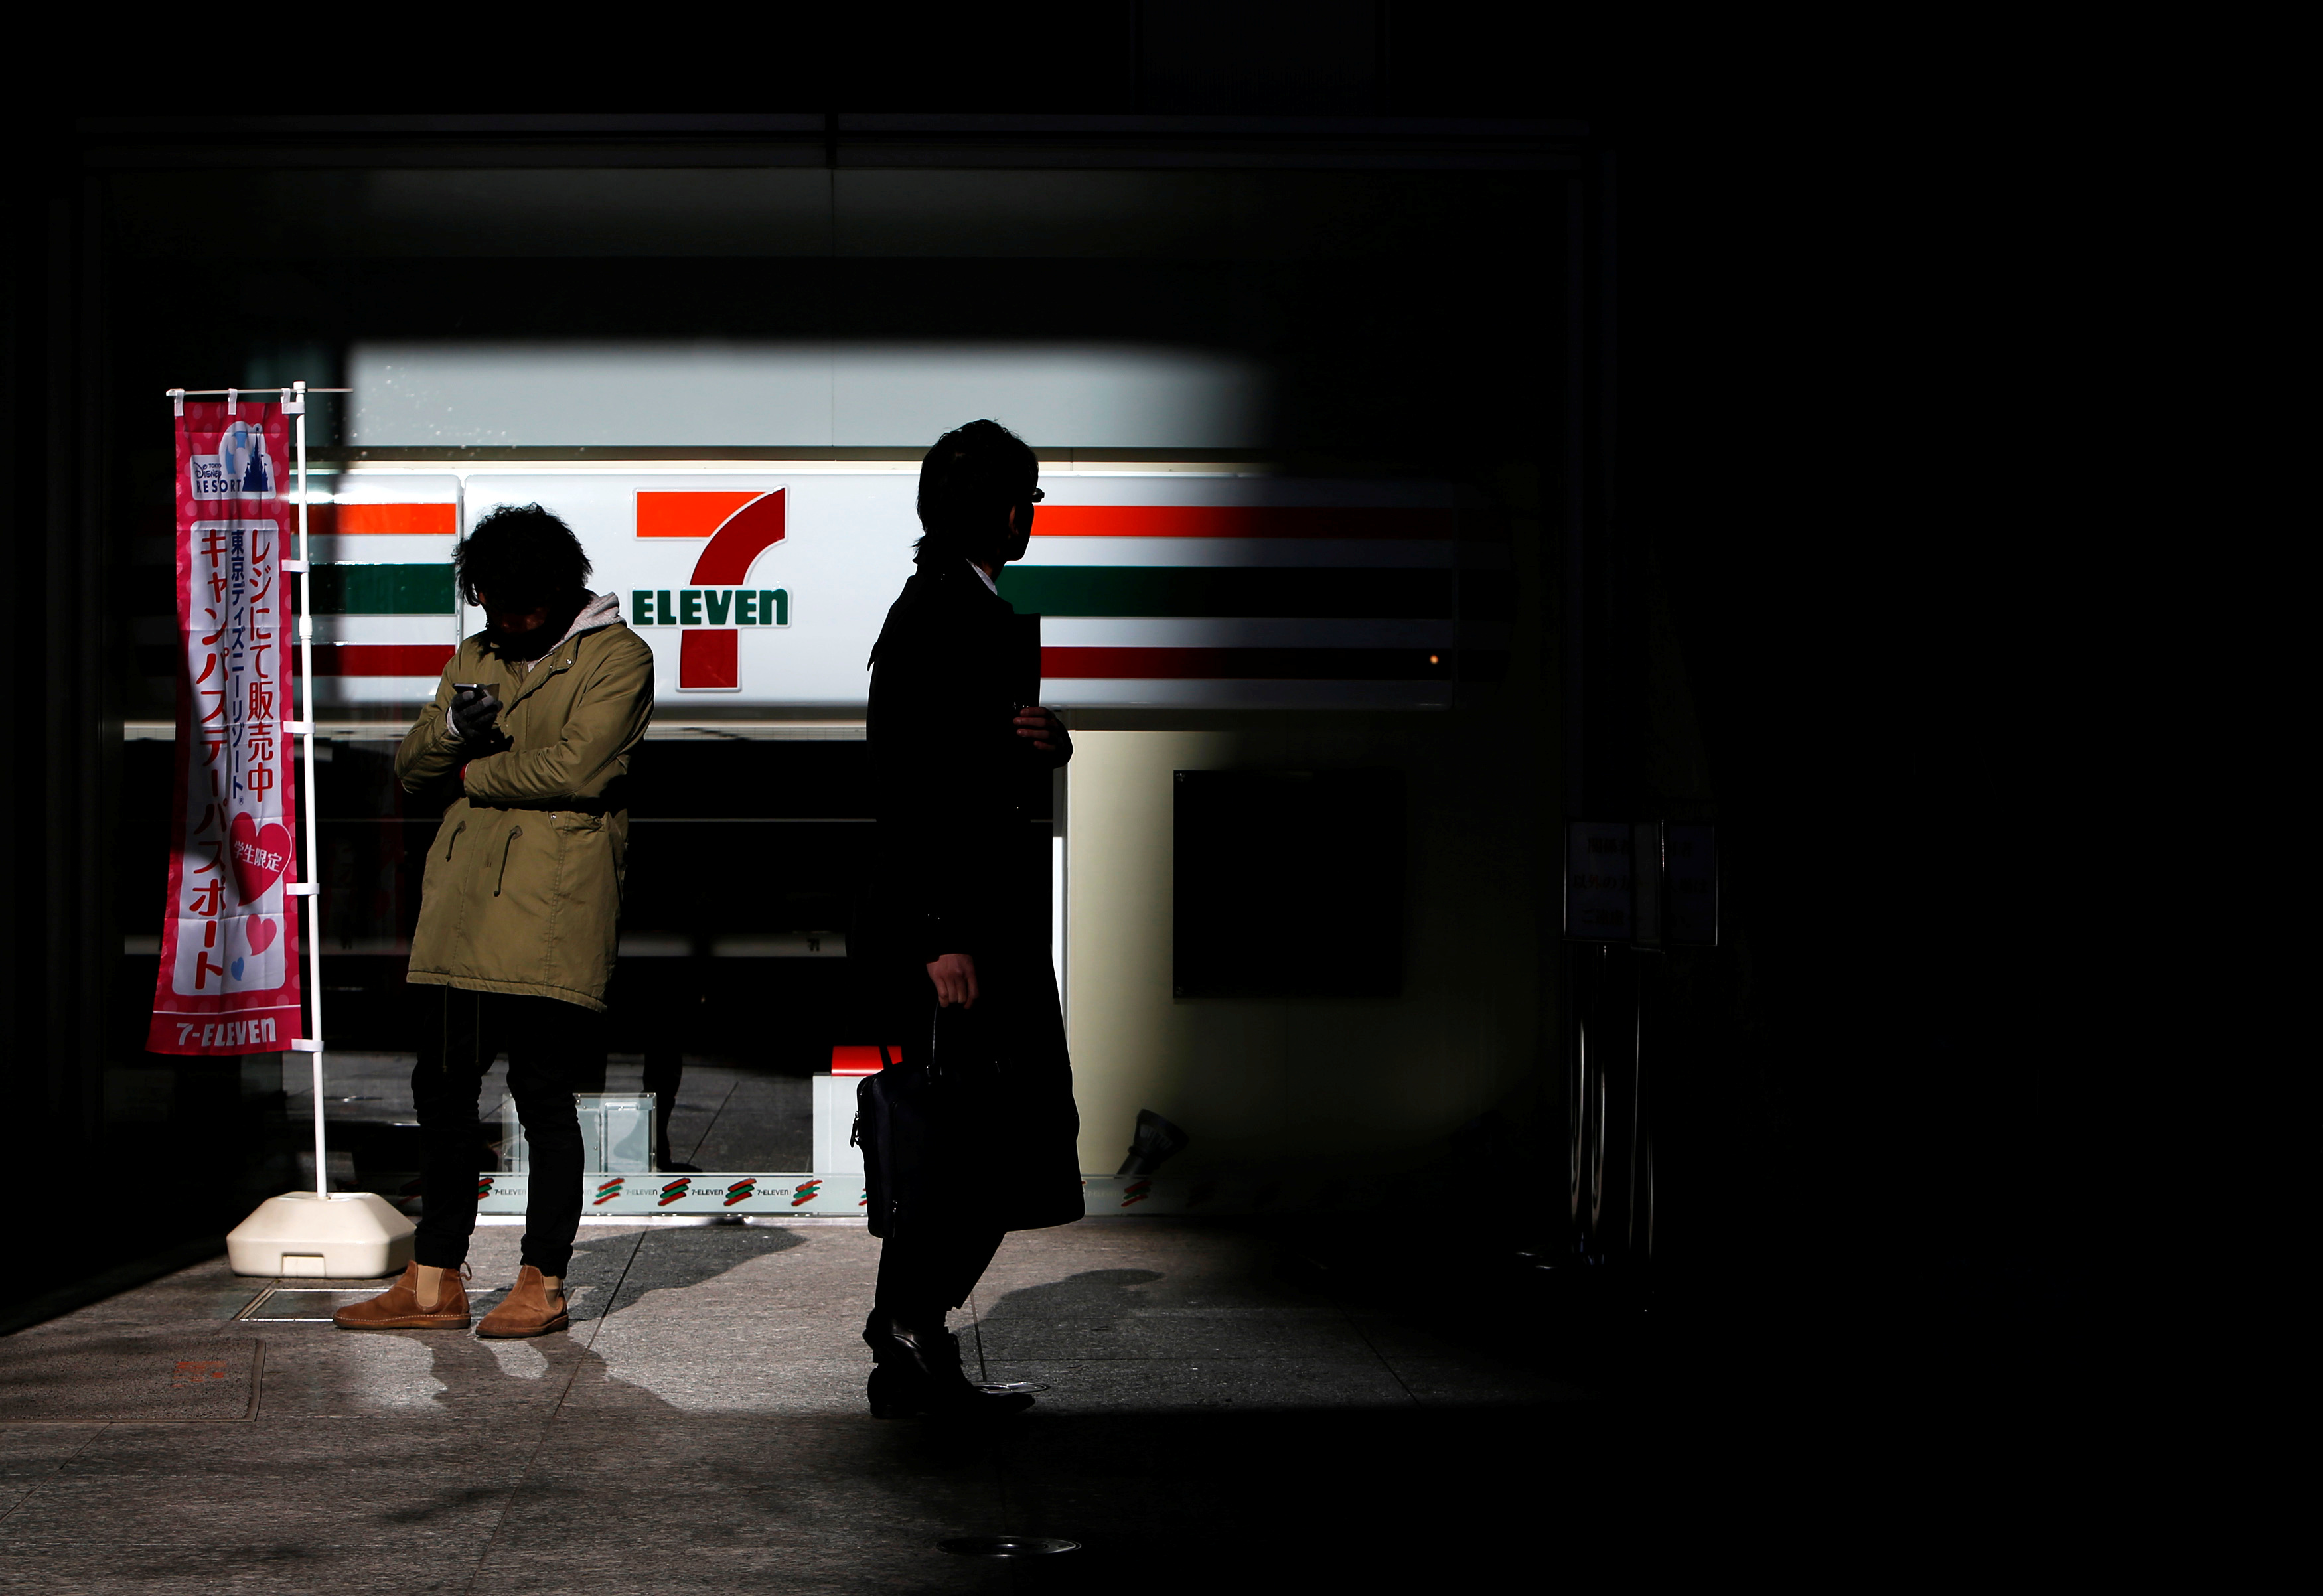 People stand outside a 7-Eleven convenience store outside the headquarters of Seven & I Holdings in Tokyo January 9, 2015. REUTERS/Yuya Shino/File Photo - S1BETFUGTKAB